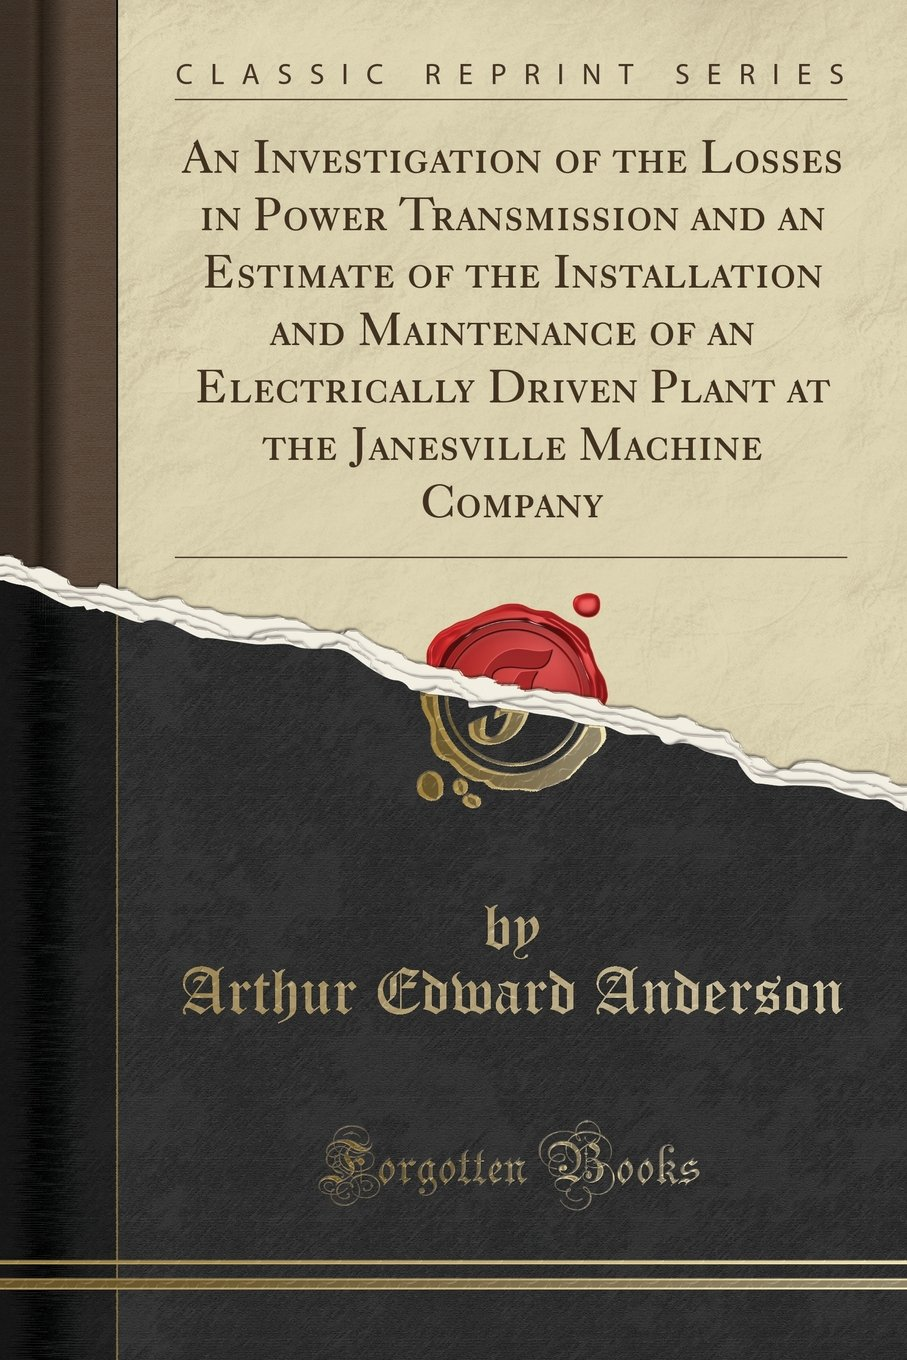 An Investigation of the Losses in Power Transmission and an Estimate of the Installation and Maintenance of an Electrically Driven Plant at the Janesville Machine Company (Classic Reprint) PDF